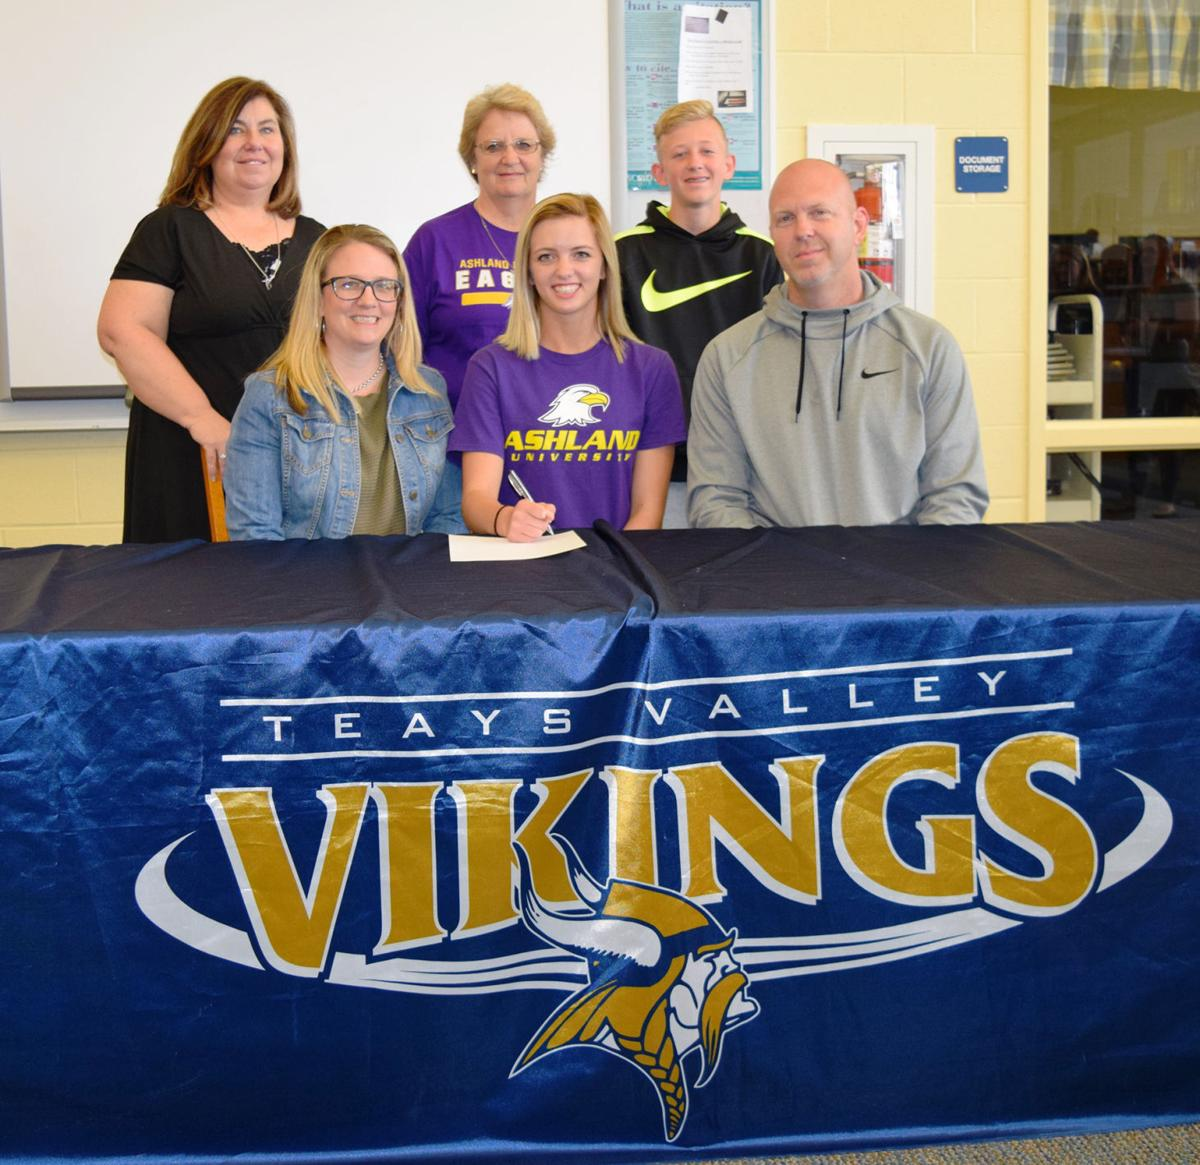 tvs graham signs with ashland sports